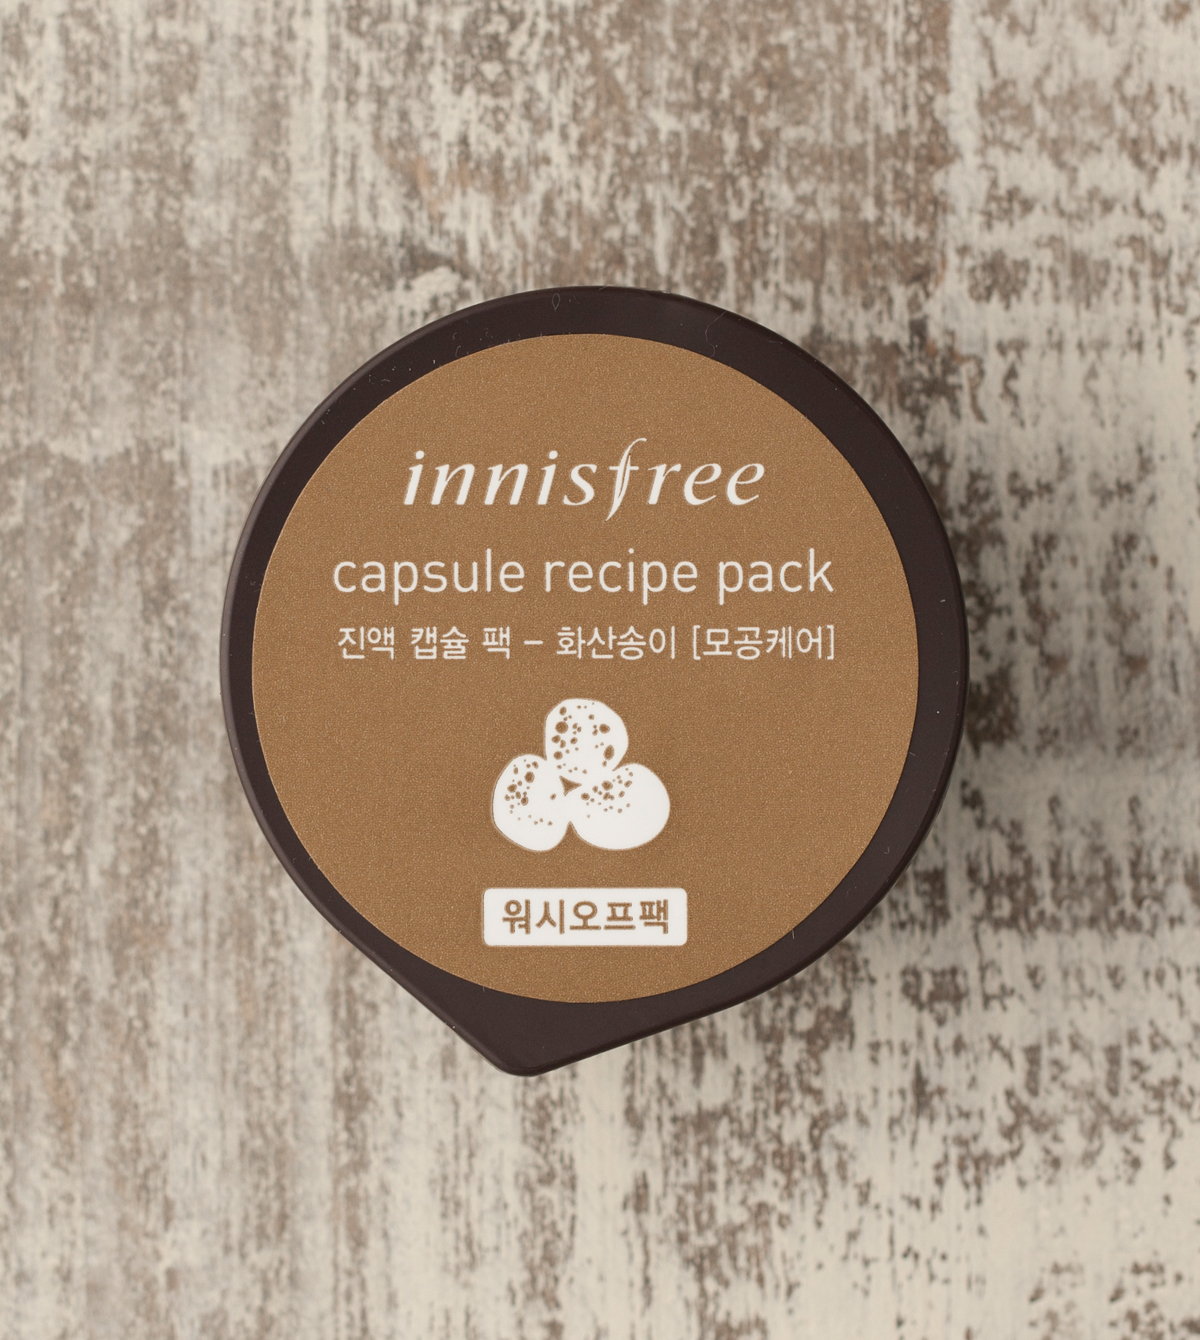 Innisfree Capsule Recipe Pack Volcanic Clay - Oily Skin Care - 14 Best Moisturizers, Fairness Creams, Lotion & Gels for Oily Skin